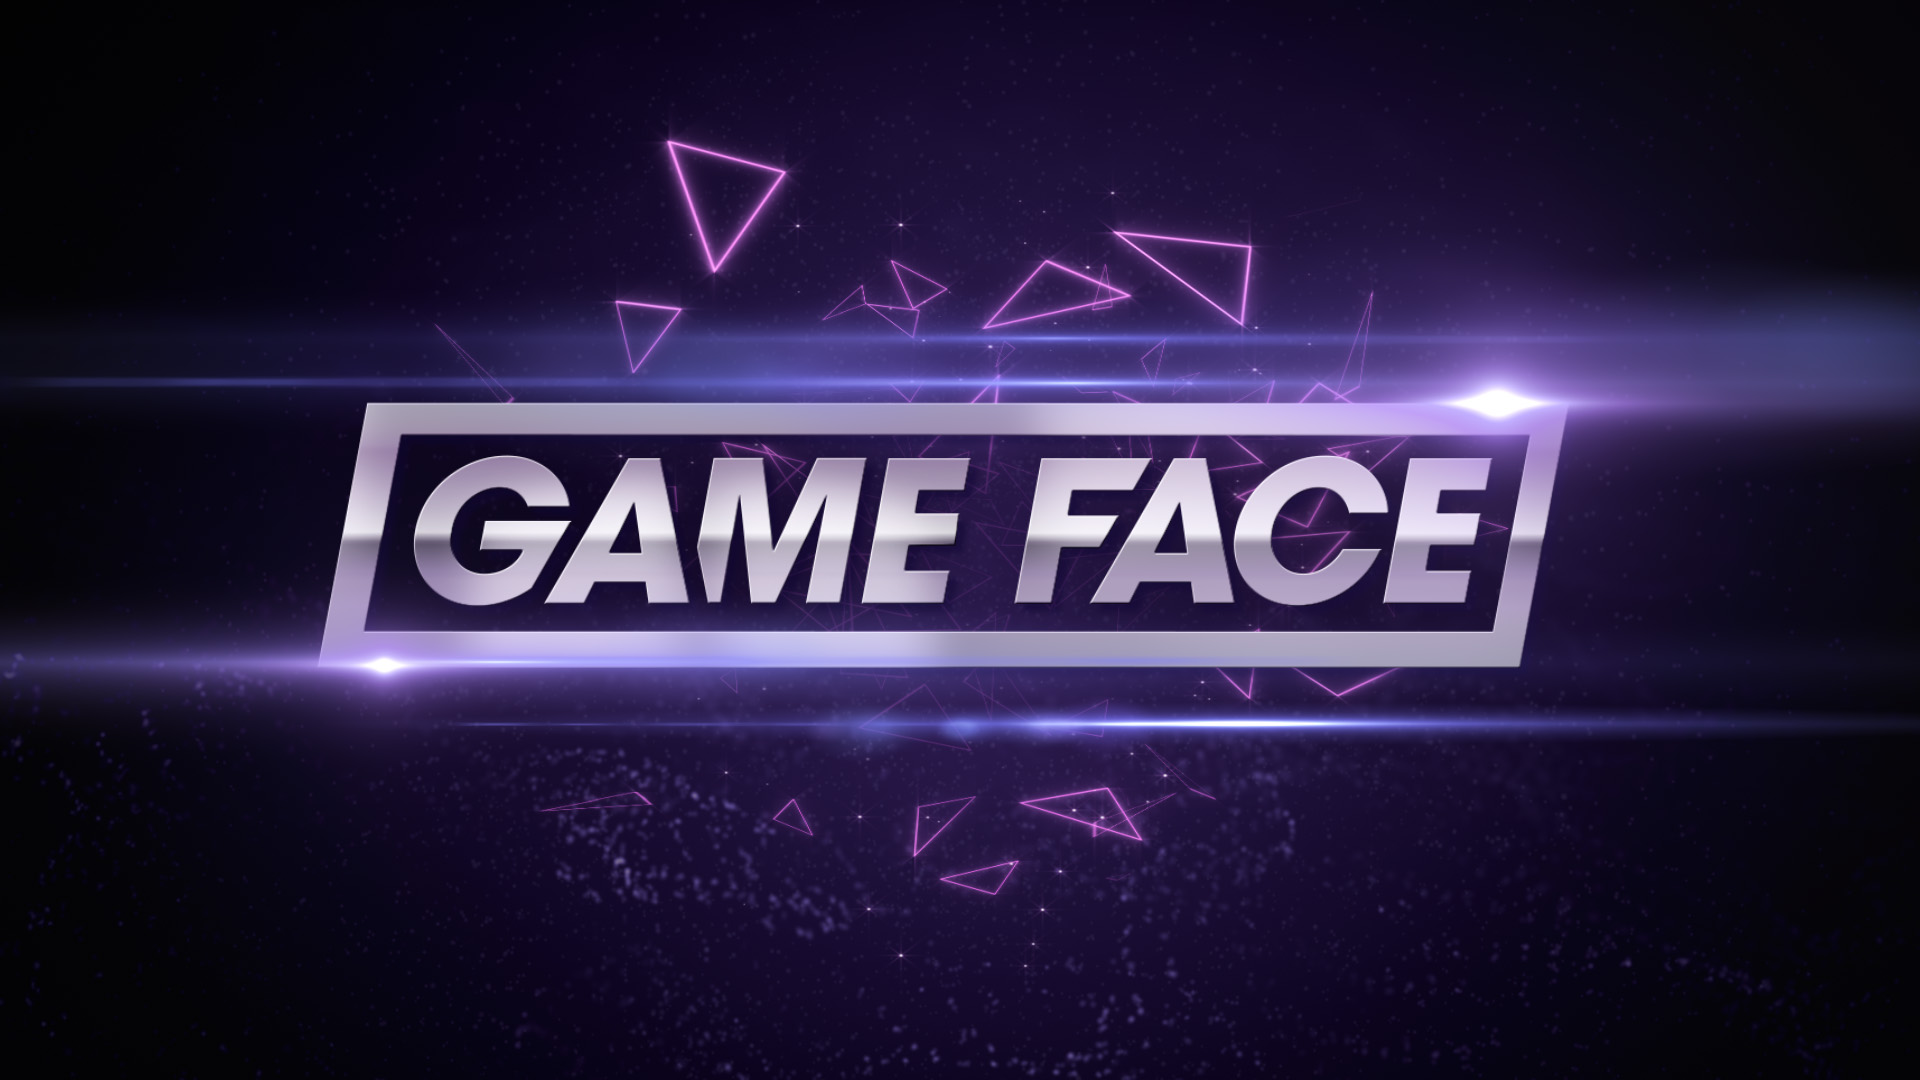 FACE OFF GAME FACE  The Ether